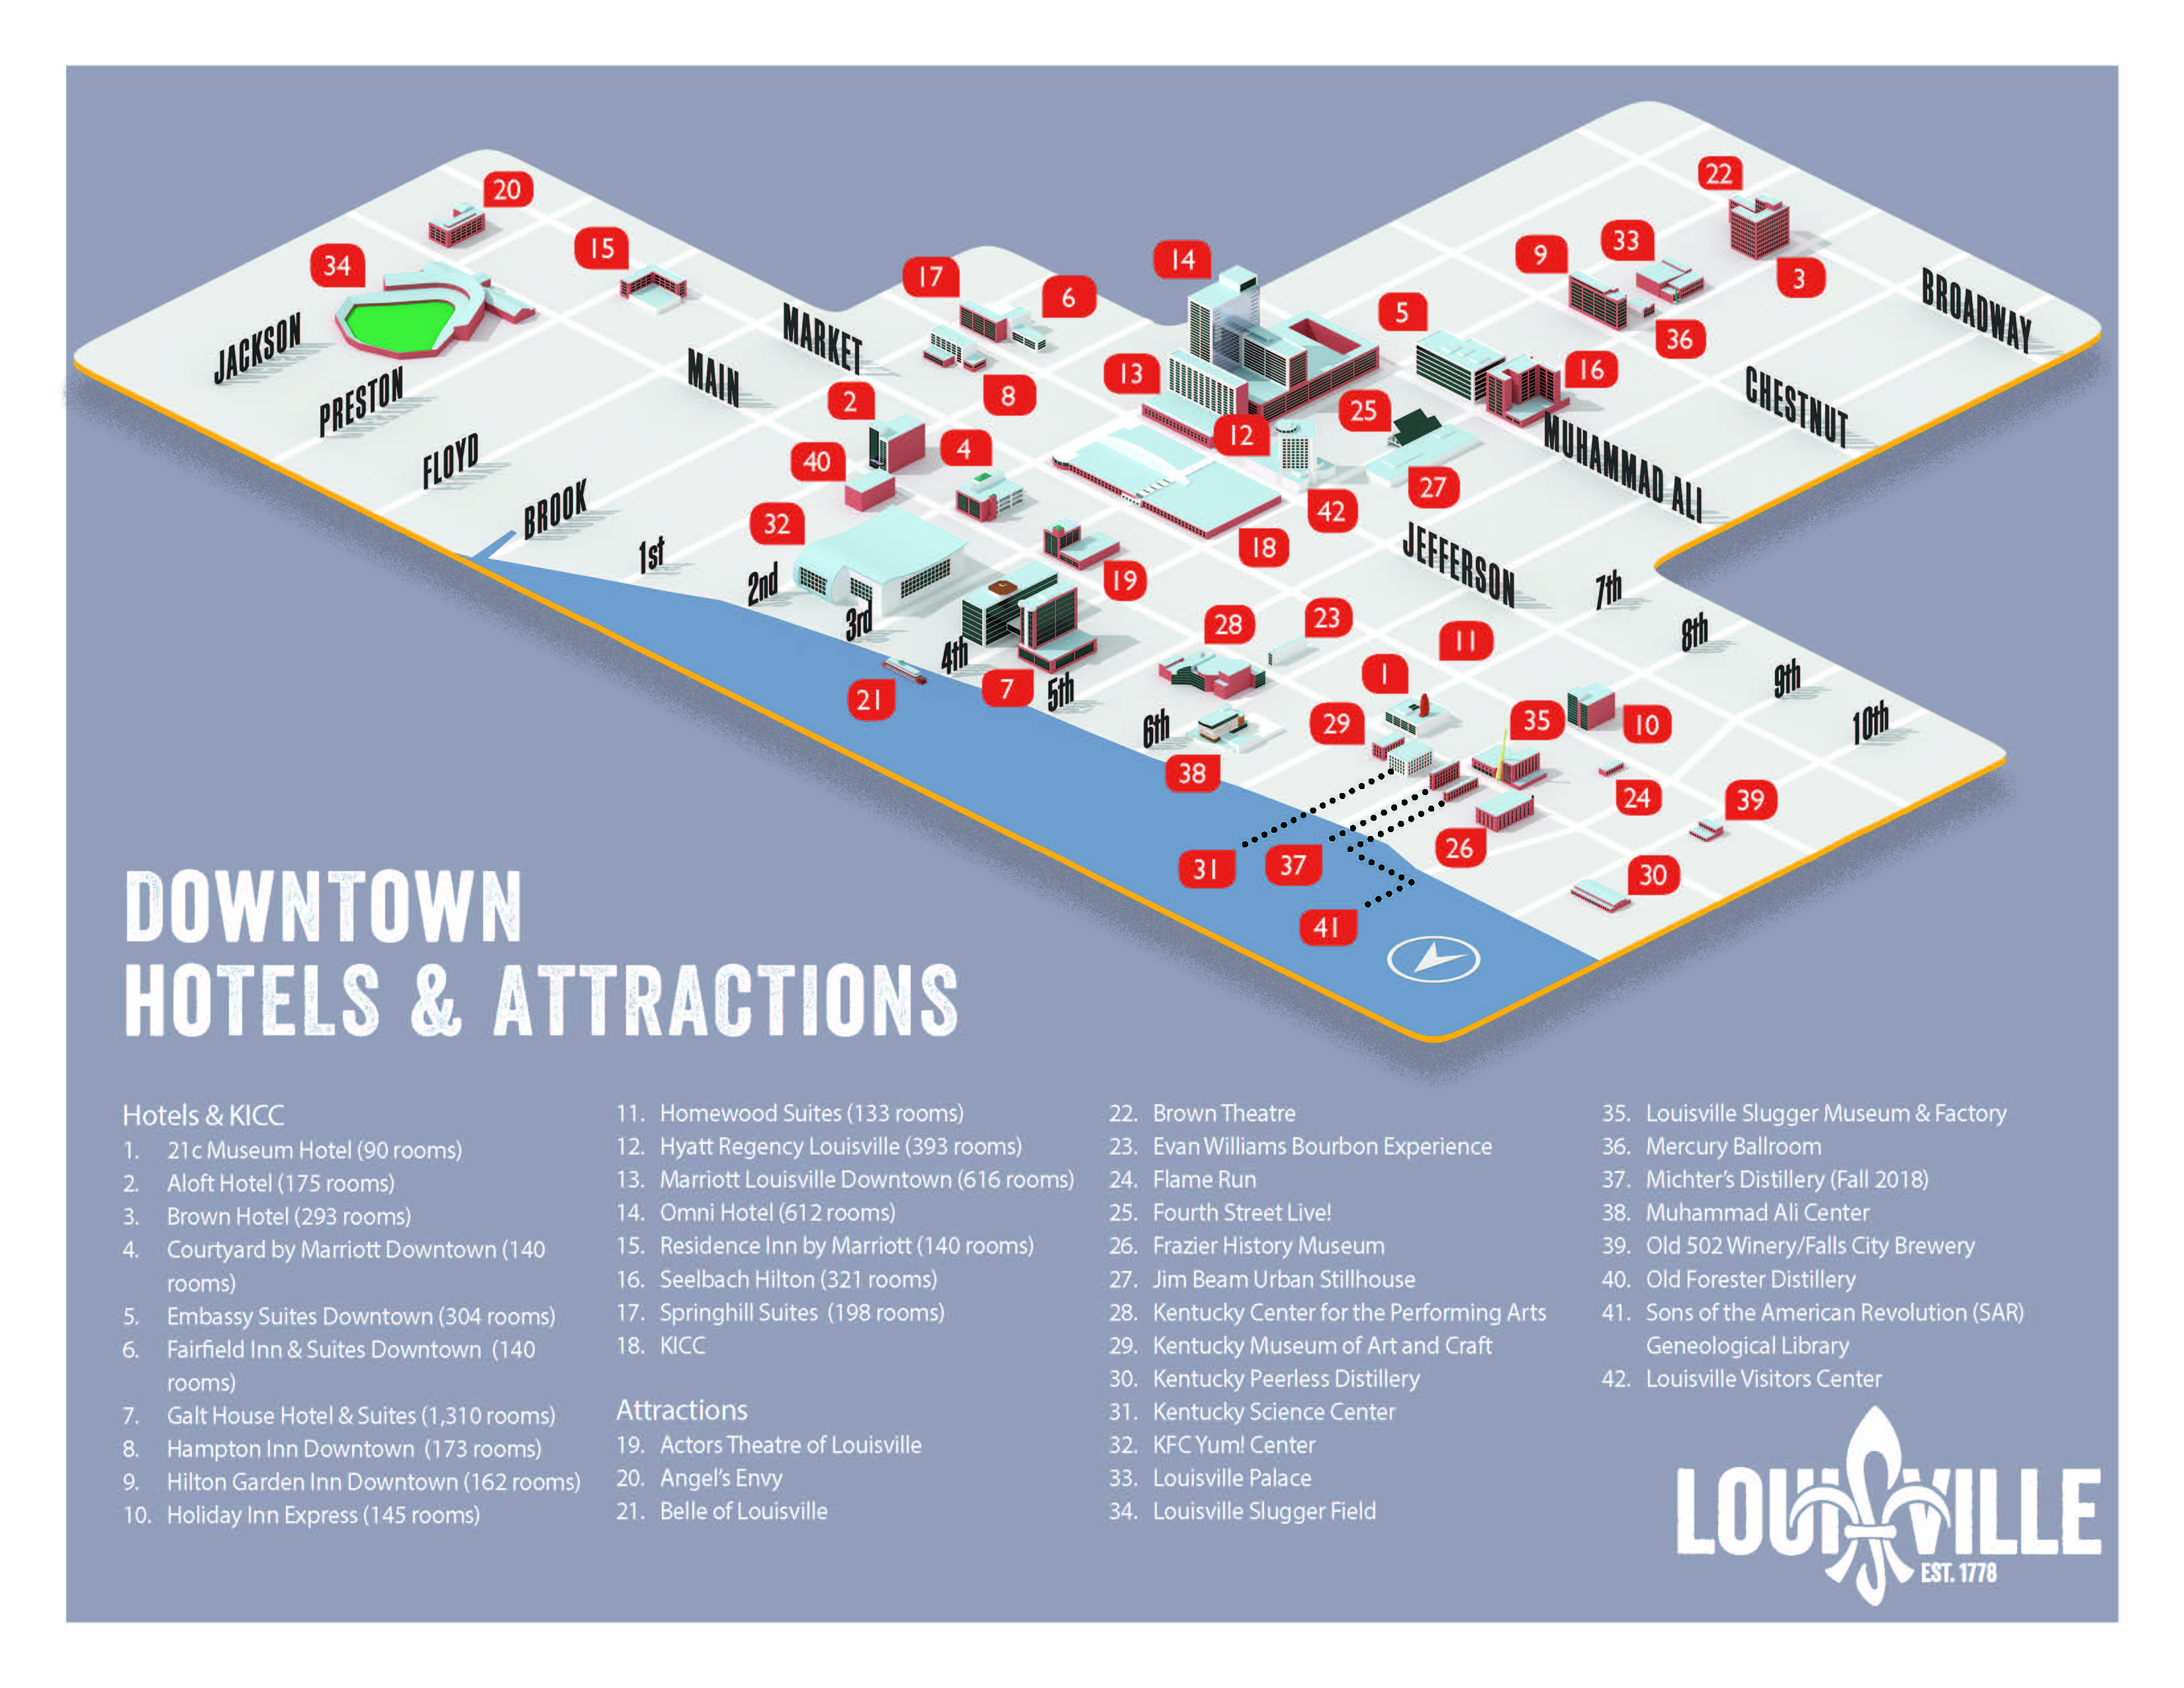 Map of Louisville KY : GoToLouisville.com Official Travel Source Indianapolis Downtown Hotels Map on lucas oil stadium hotel map, indianapolis in street guide, indianapolis marriott downtown, indianapolis convention center map, casinos in shreveport louisiana map, indy hotel map, indianapolis downtown weddings, marion county indianapolis zip code map, indiana convention center hotel map, indianapolis downtown restaurants, indianapolis downtown apartments, indianapolis maryland map, lucas oil raceway park map, indianapolis airport hotels, linq hotel map, indianapolis indiana, indianapolis map downtown pdf, elkhart hotel map, indianapolis attractions map, indianapolis downtown parking lots,